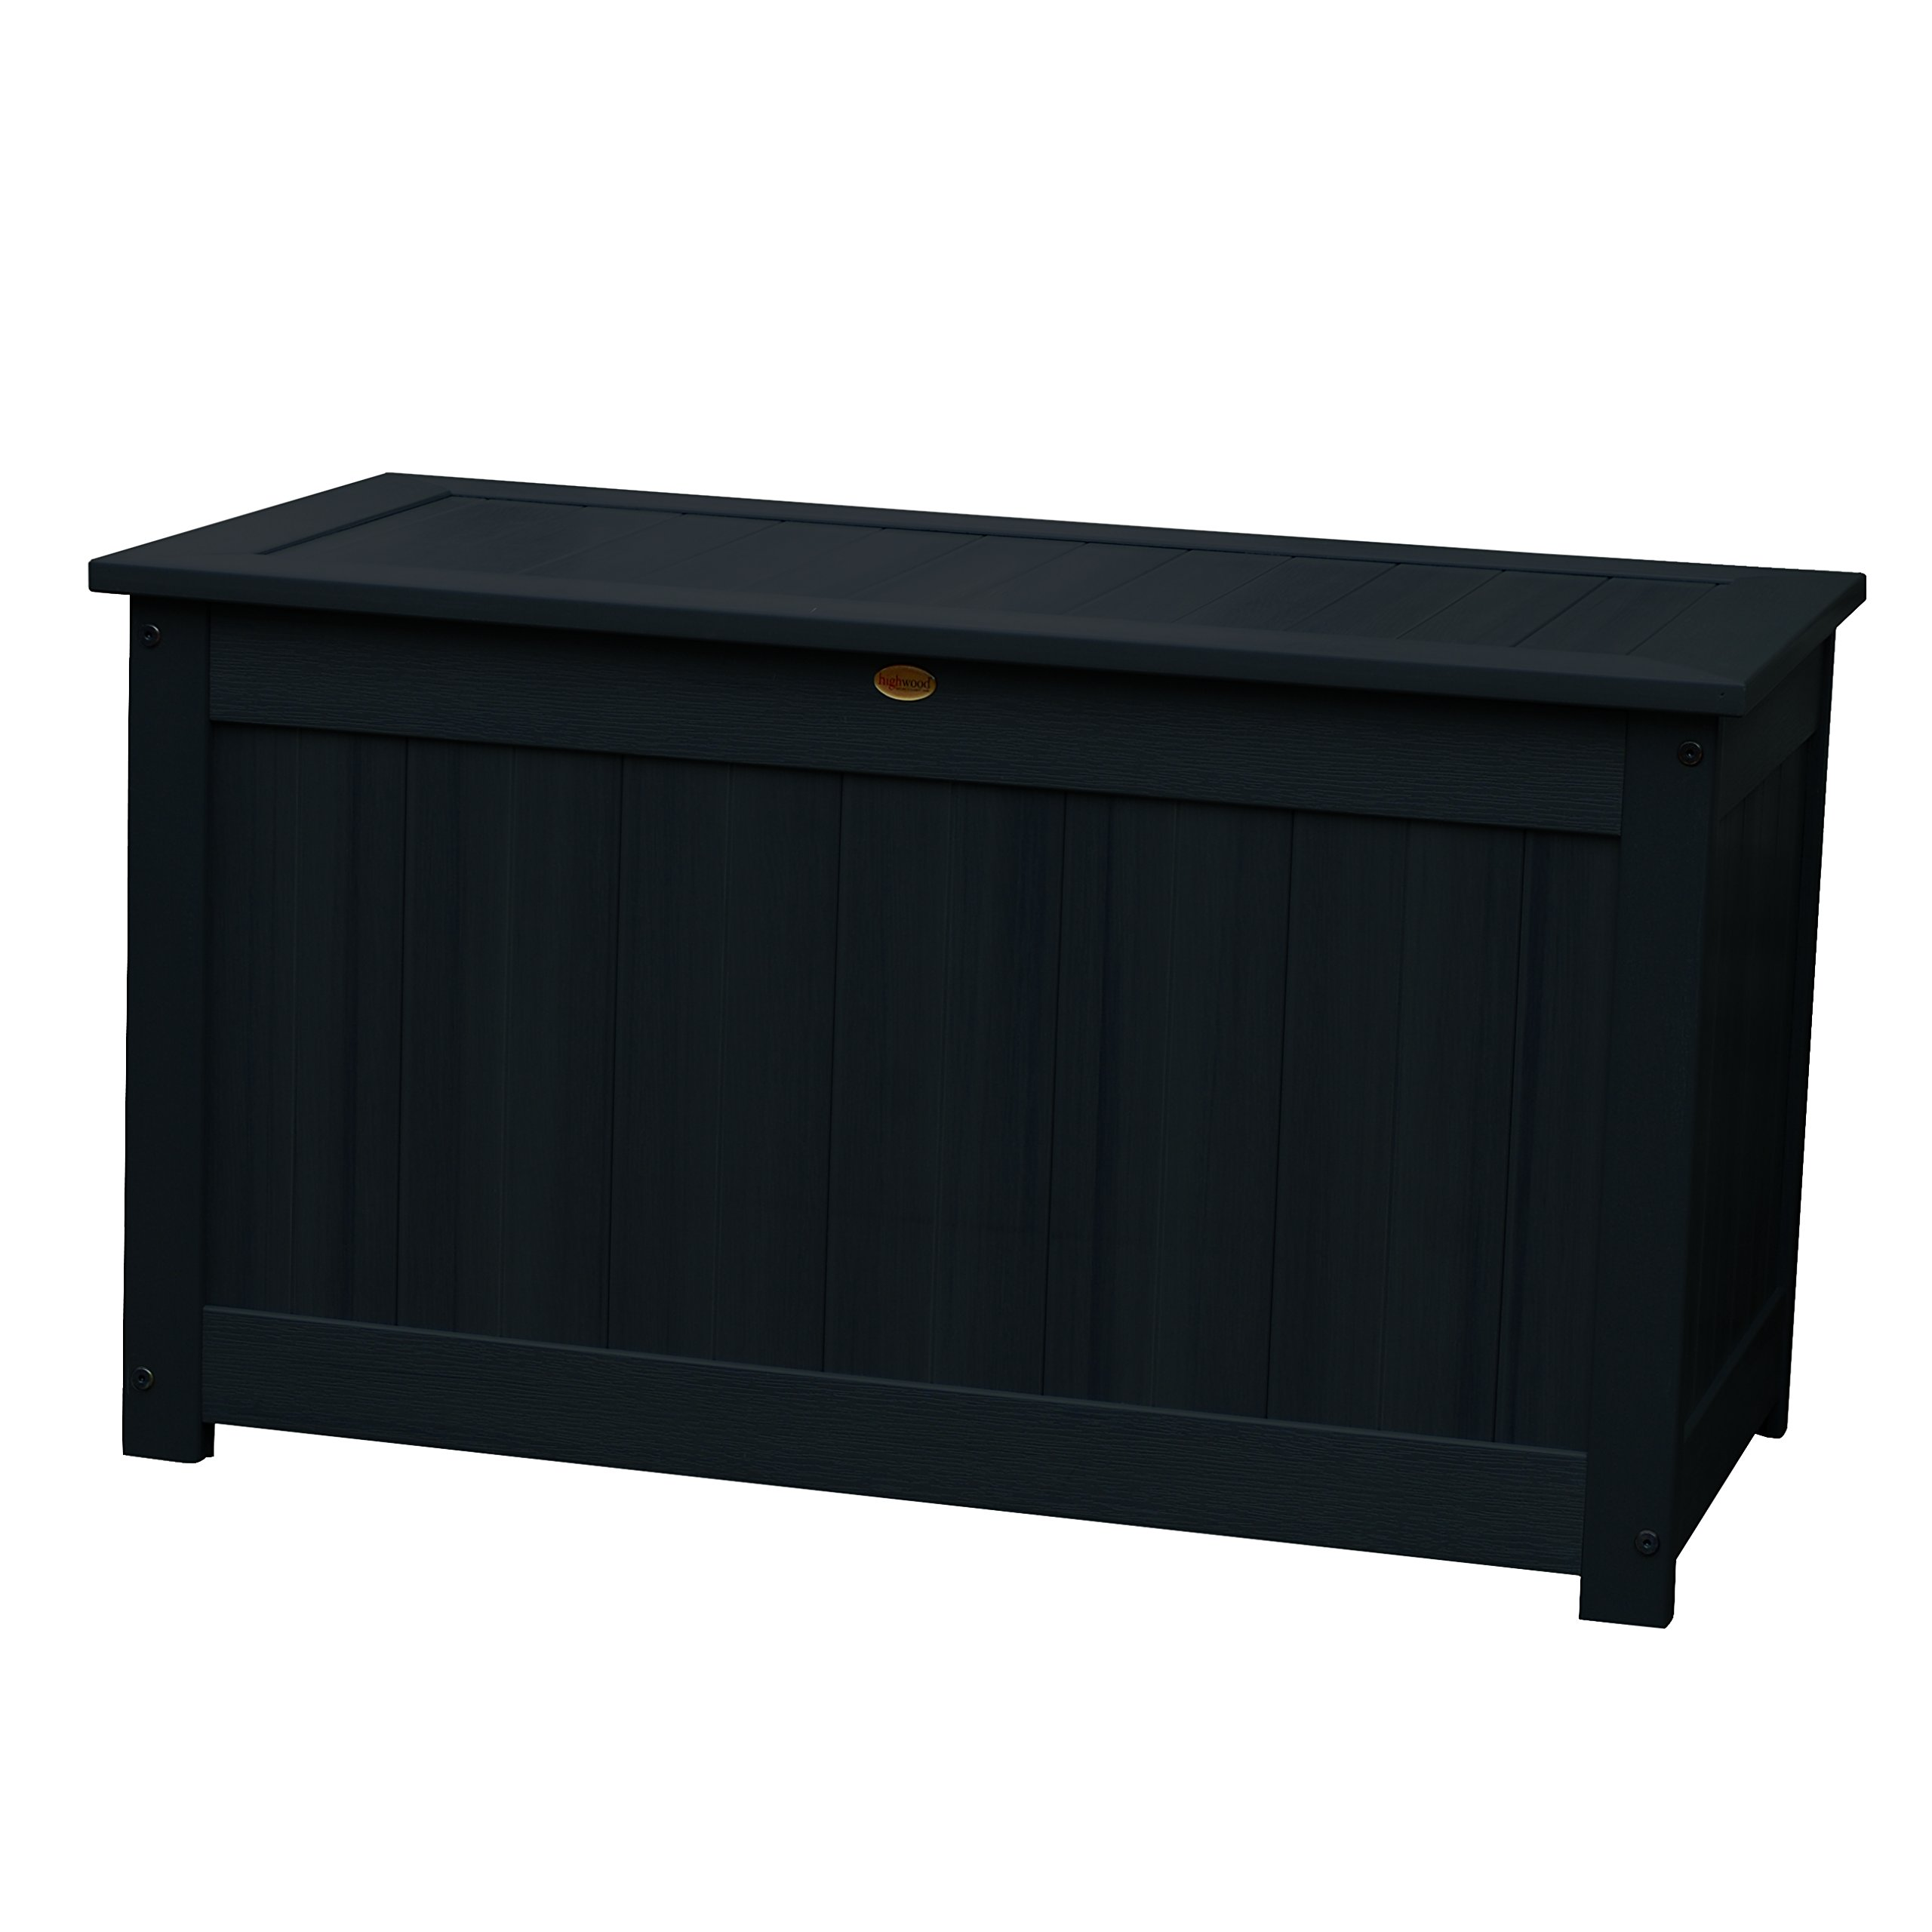 Highwood Deck Storage Box, Large, Black